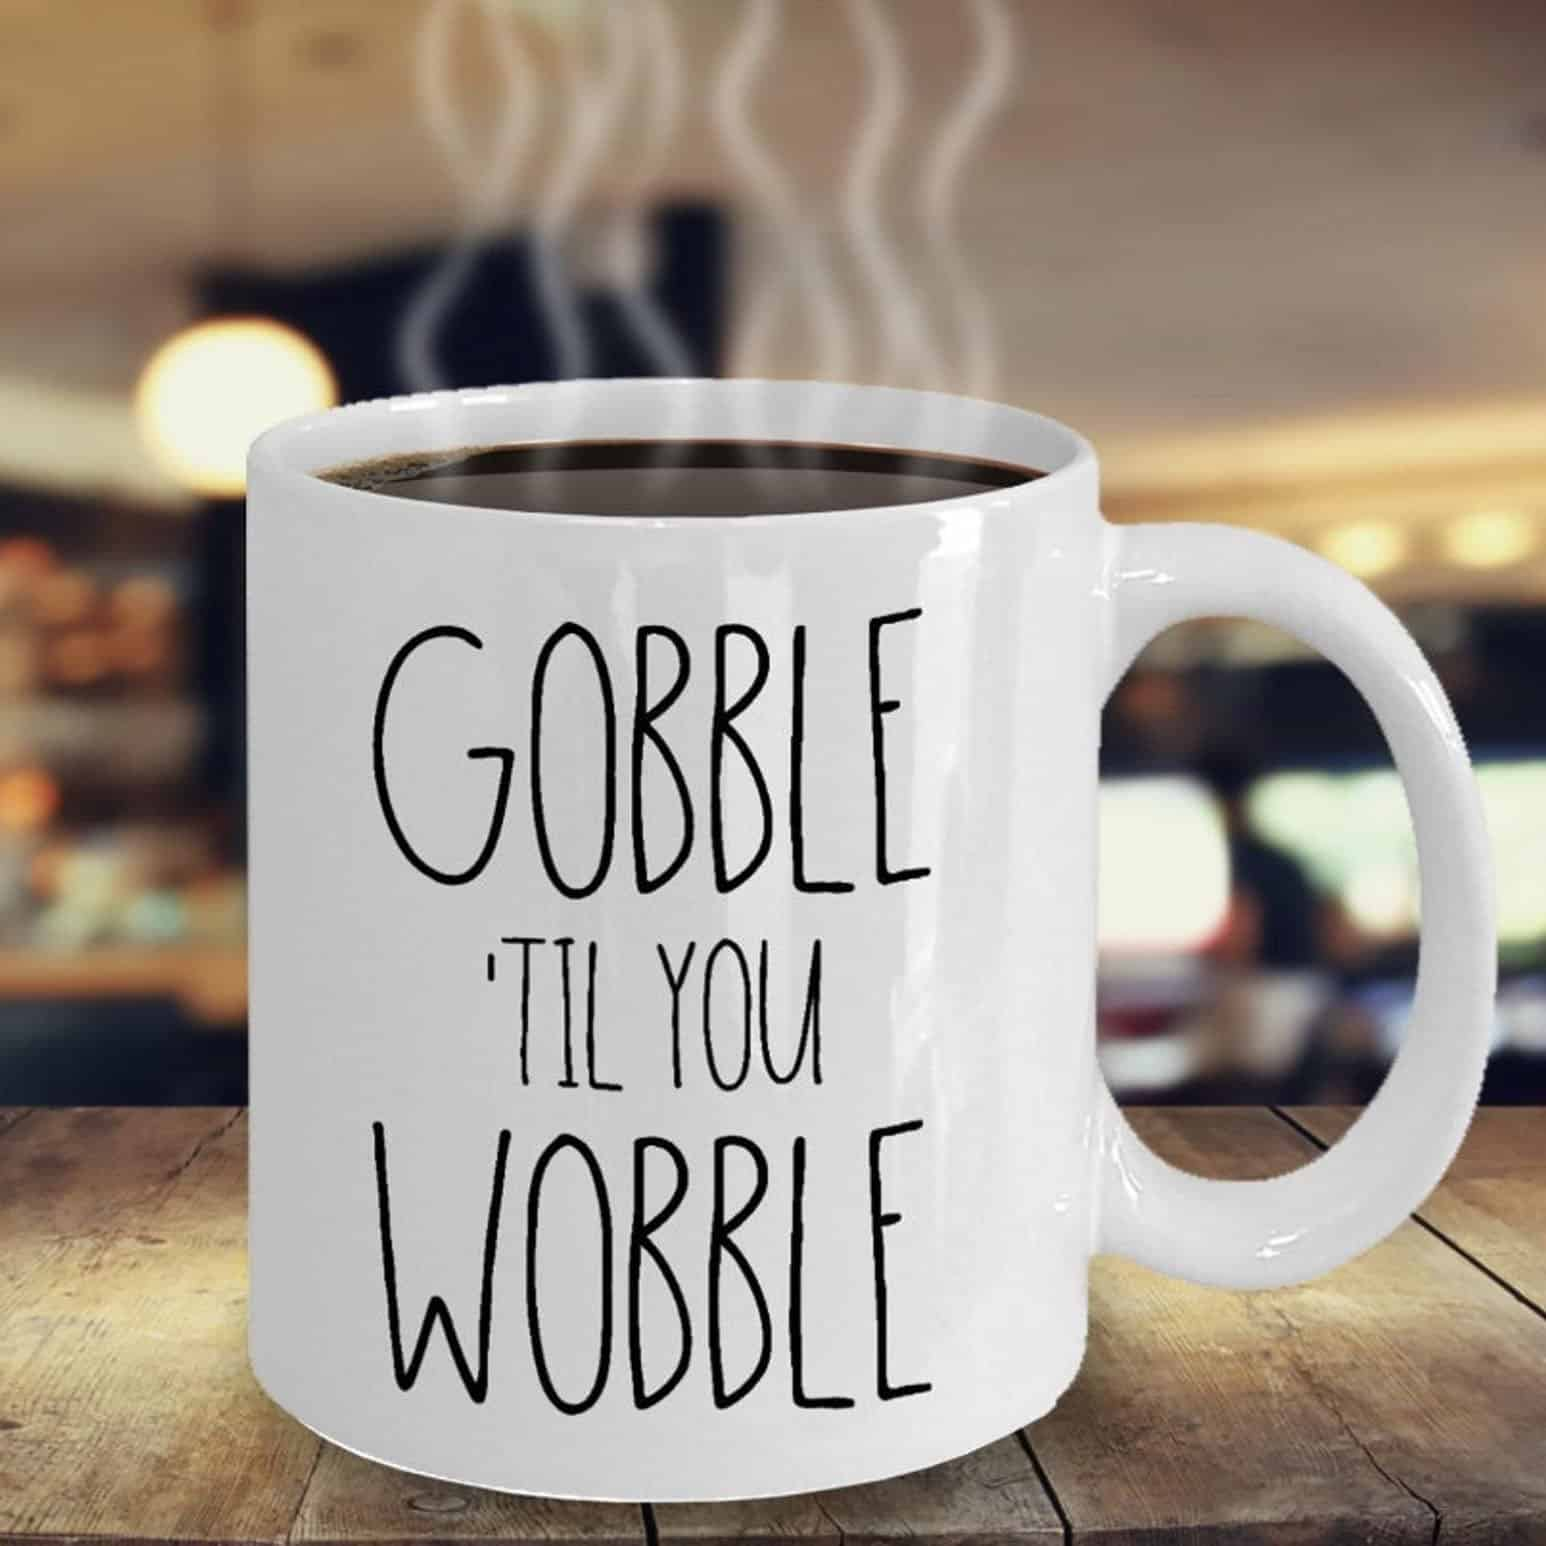 Gobble til you wobble mug